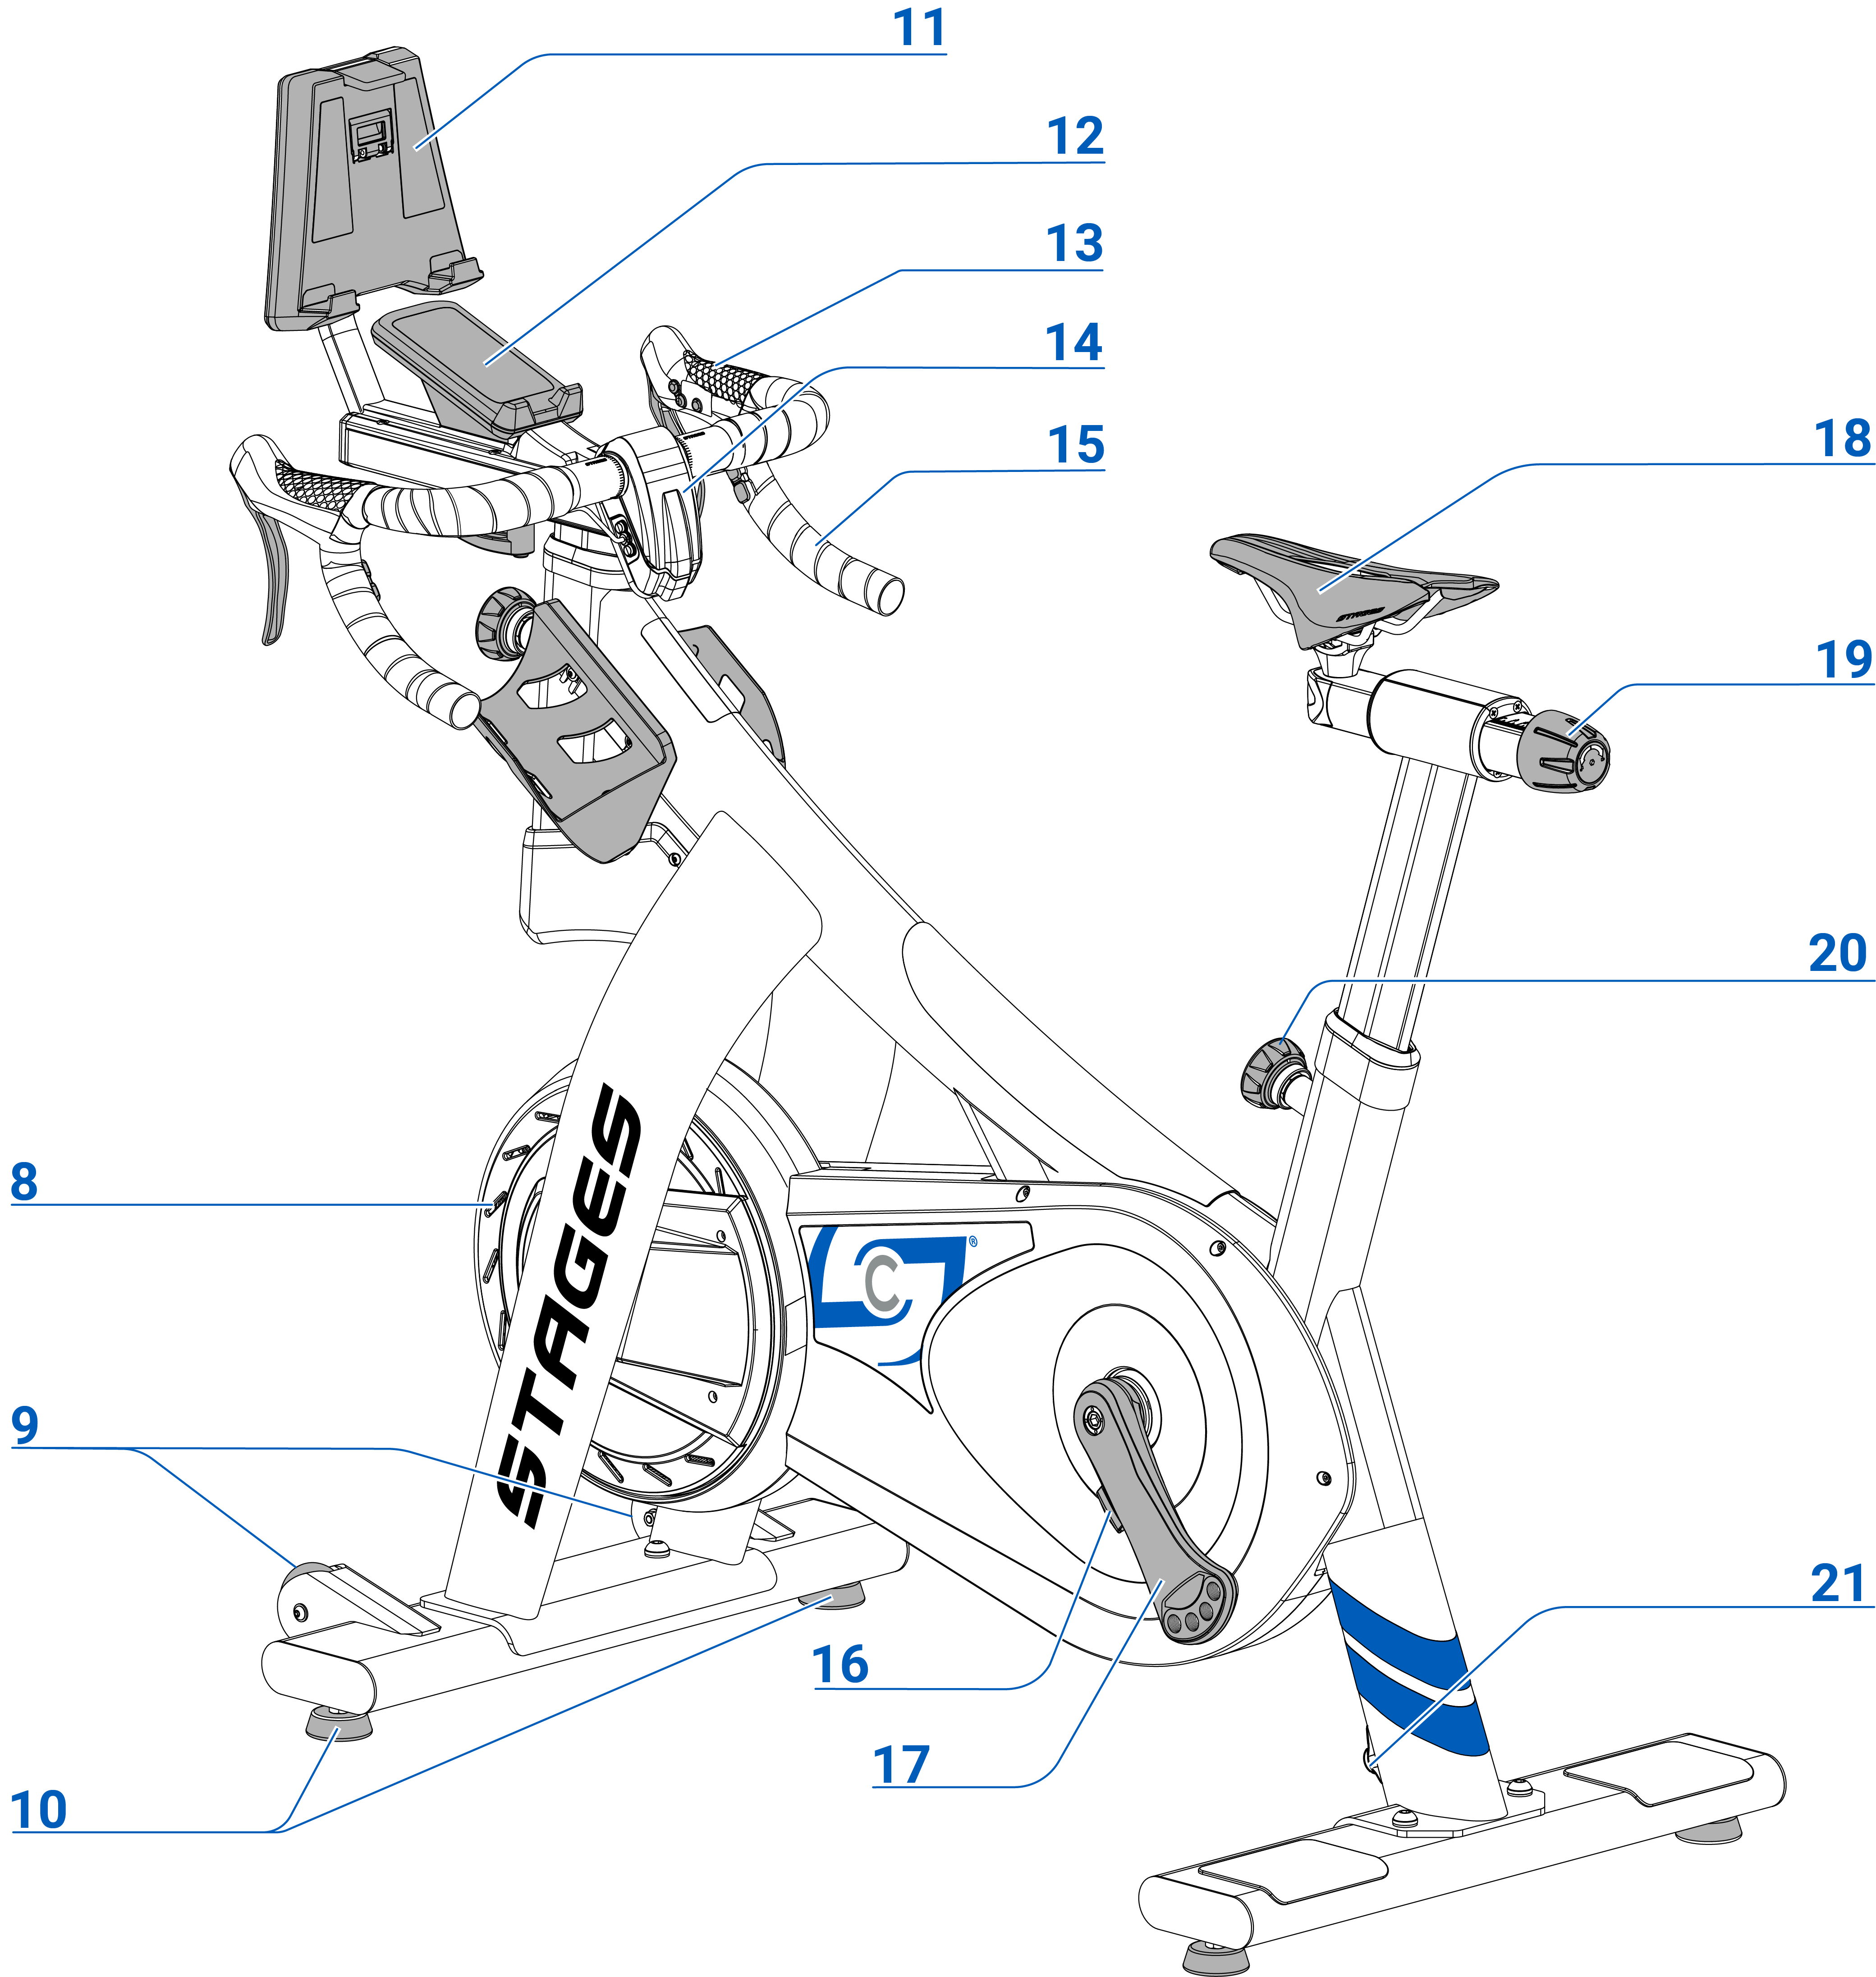 Profile view of SB20 with parts labeled 11 to 20 (refer to table below).